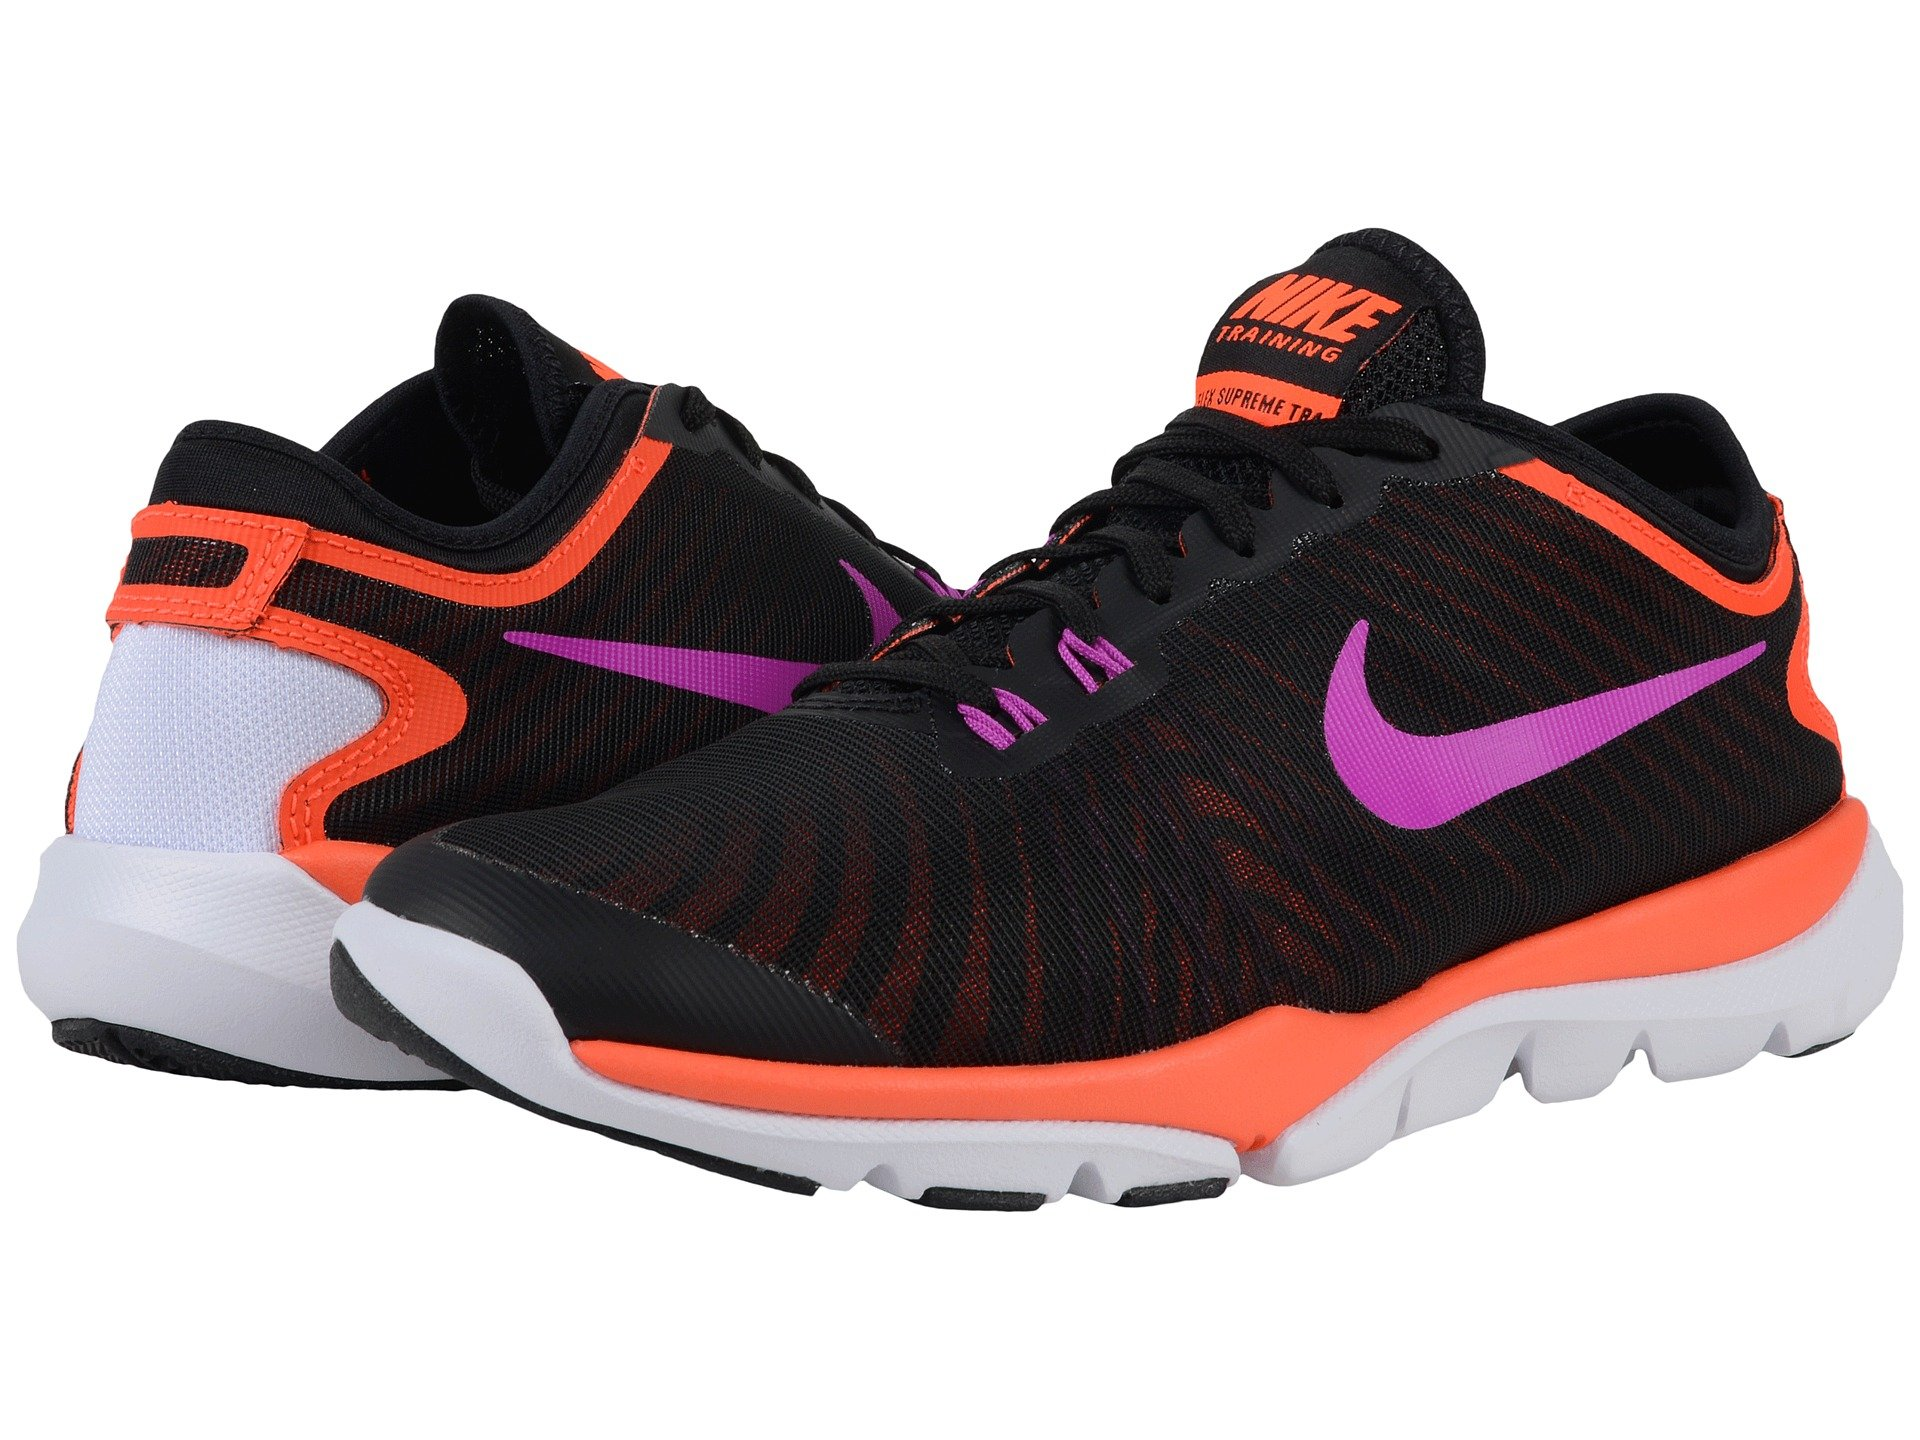 release date 93411 a1823 nike training flex supreme tr4 pink and black Find great deals for Nike  Women s Flex Supreme Tr4 Training Wolf Grey Black Pink Size 7.5 Flywire.